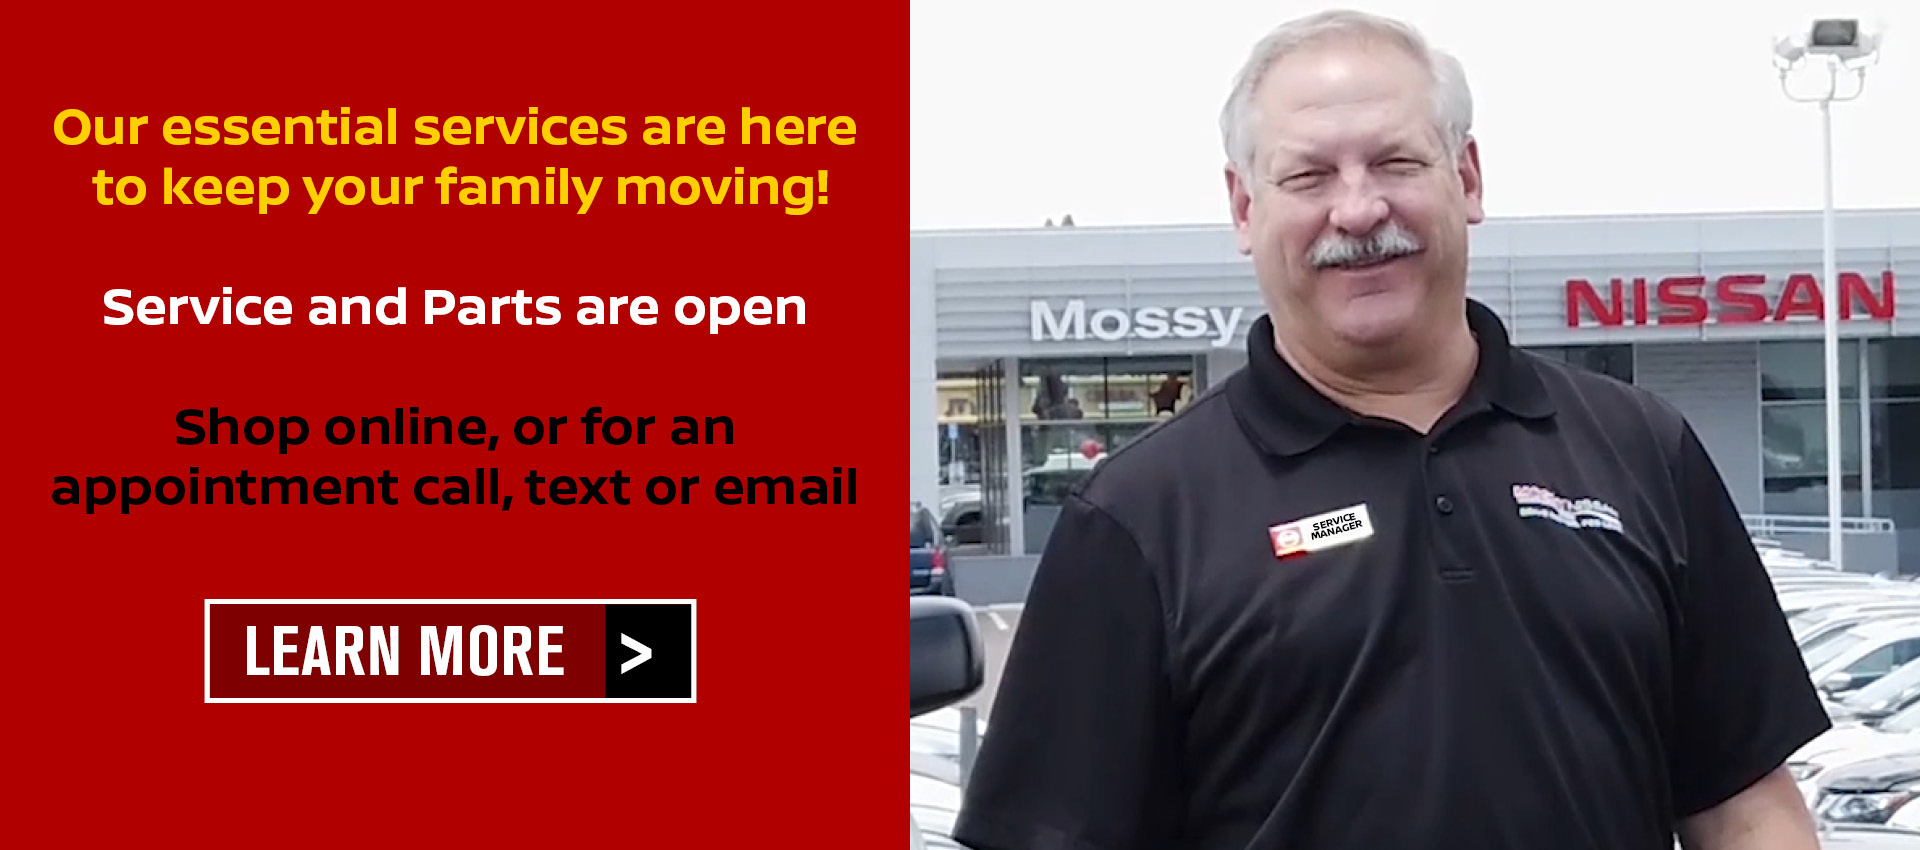 Mossy Nissan - Essential Services